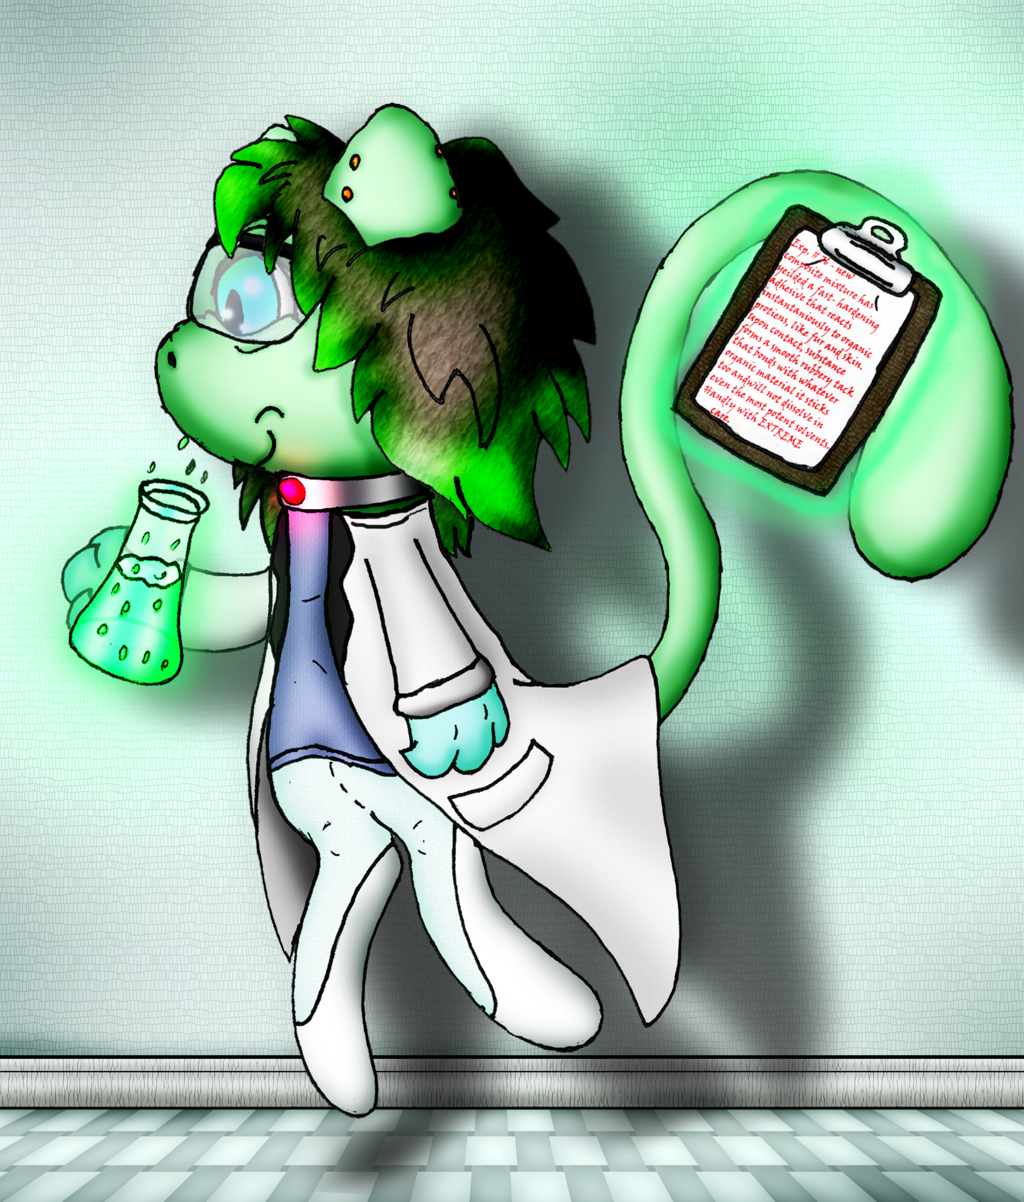 Dr. Yvonna Alumina the Mew Scientist's Latest Experiment (Commission)